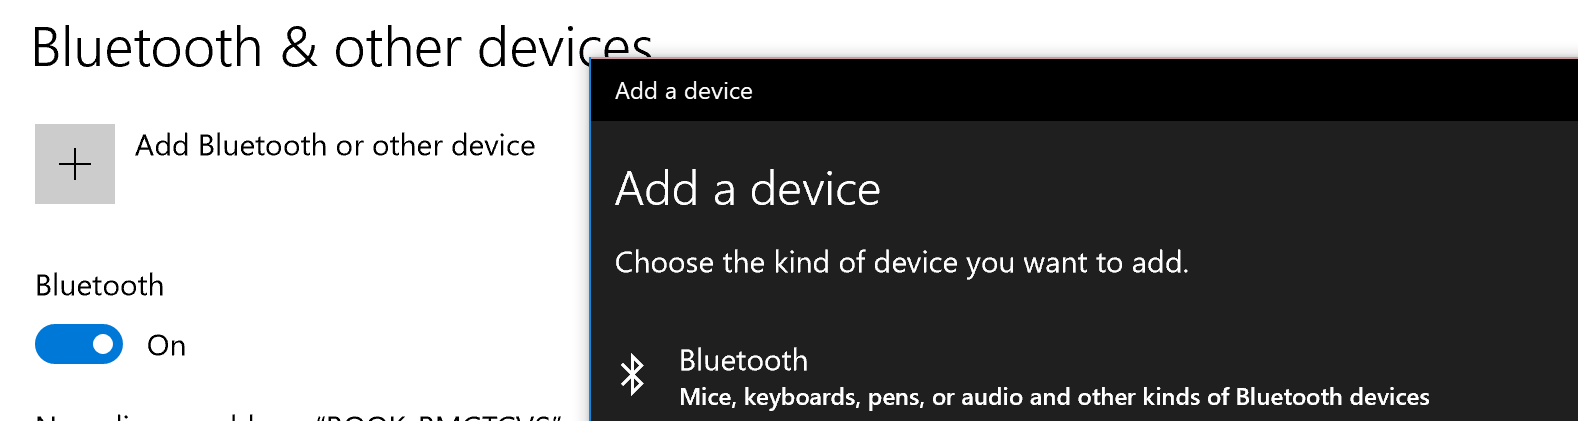 Add a bluetooth device to windows 10